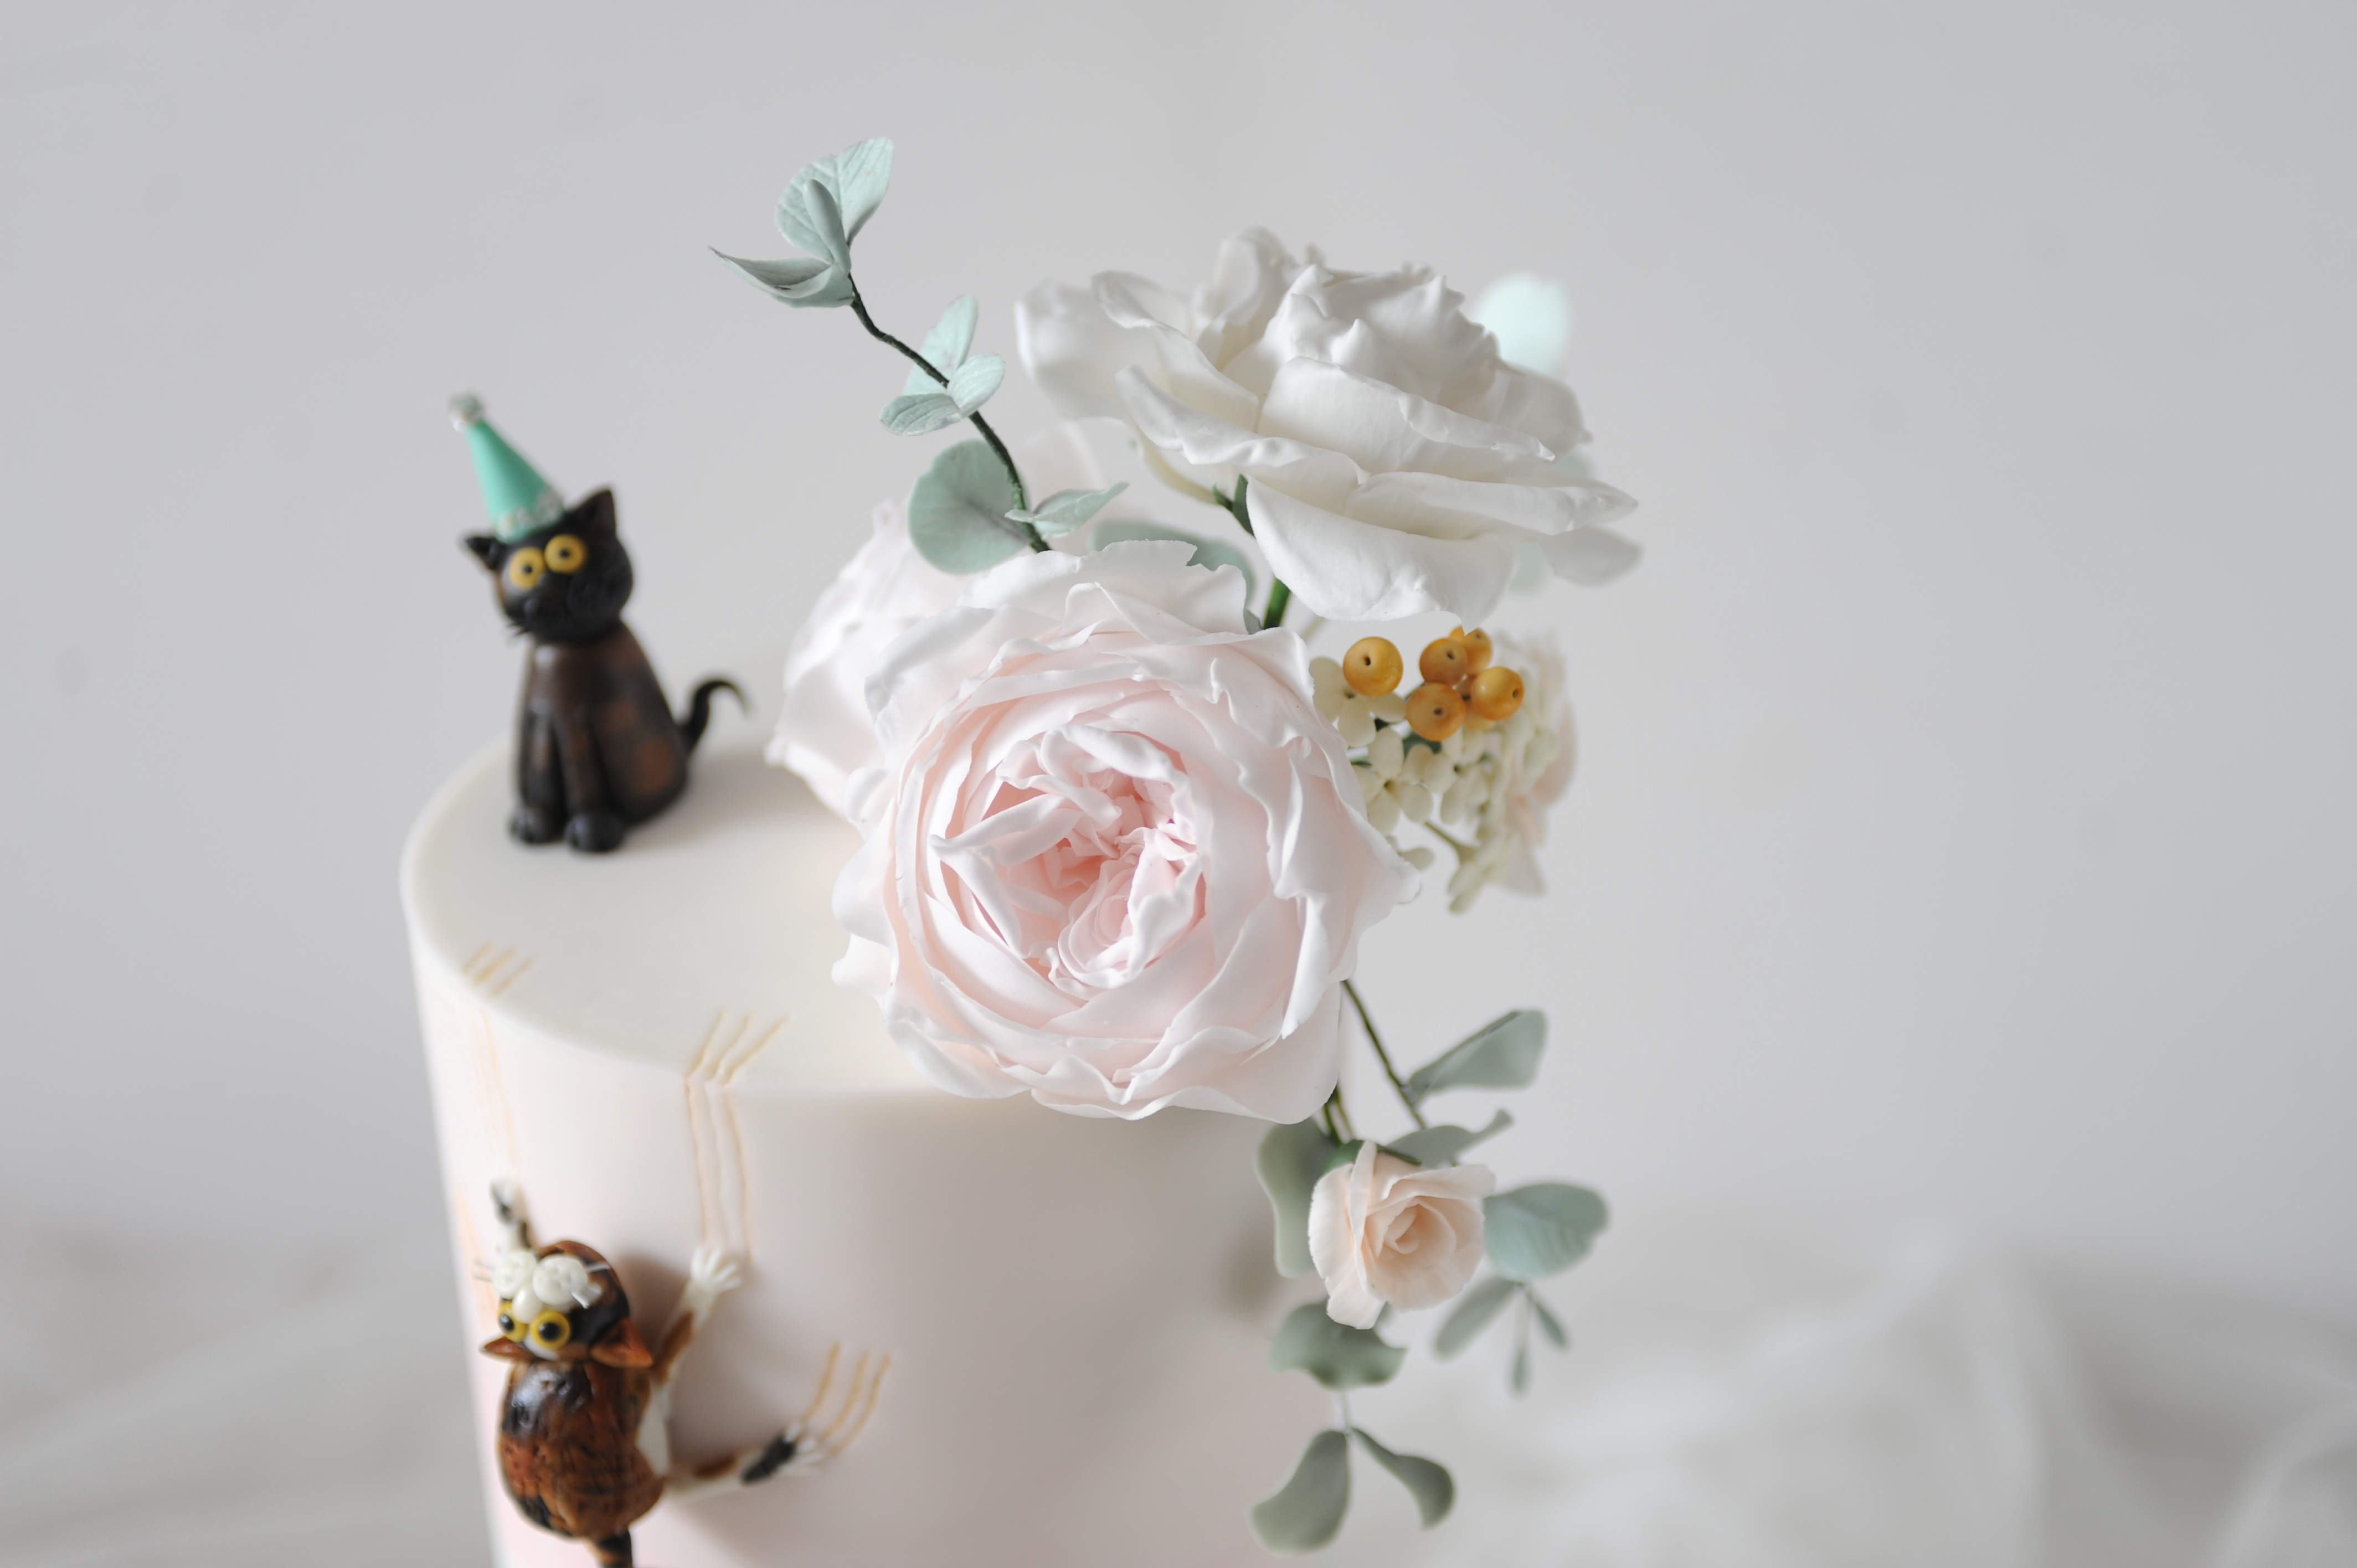 Cats & flowers close up